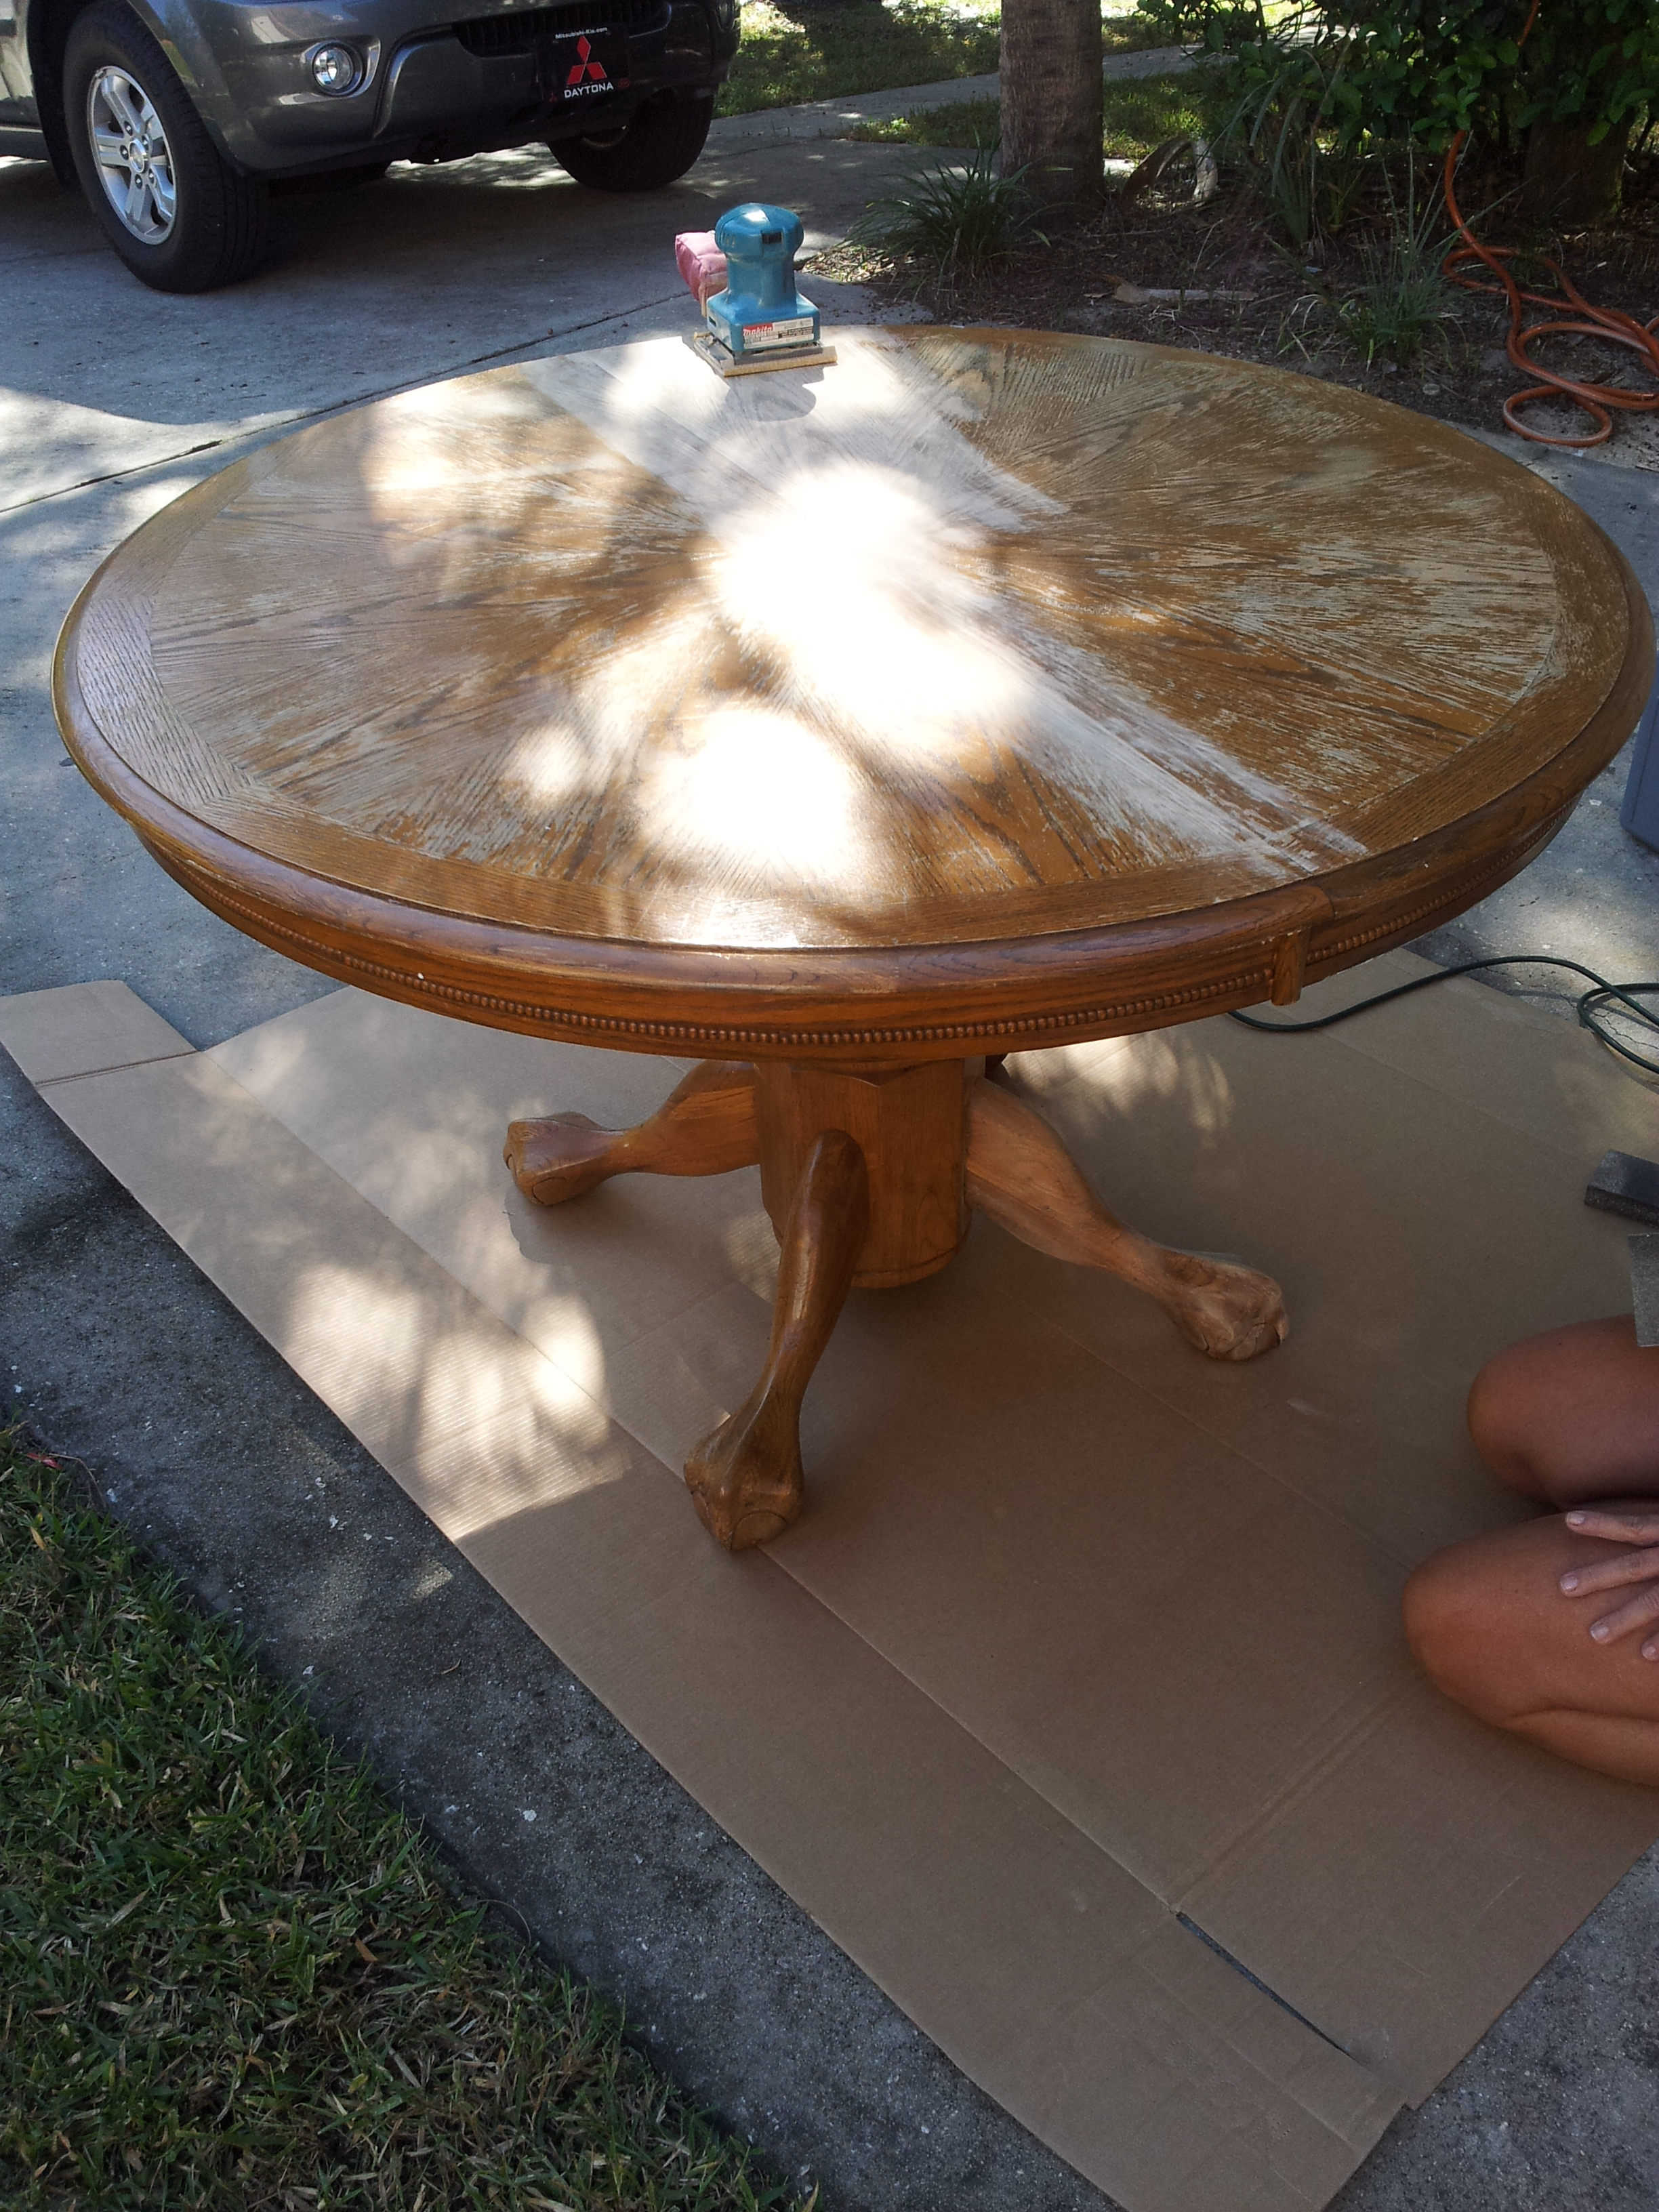 Thrifty Thursday: My Thrift Store Dining Set | Meghan on the Move